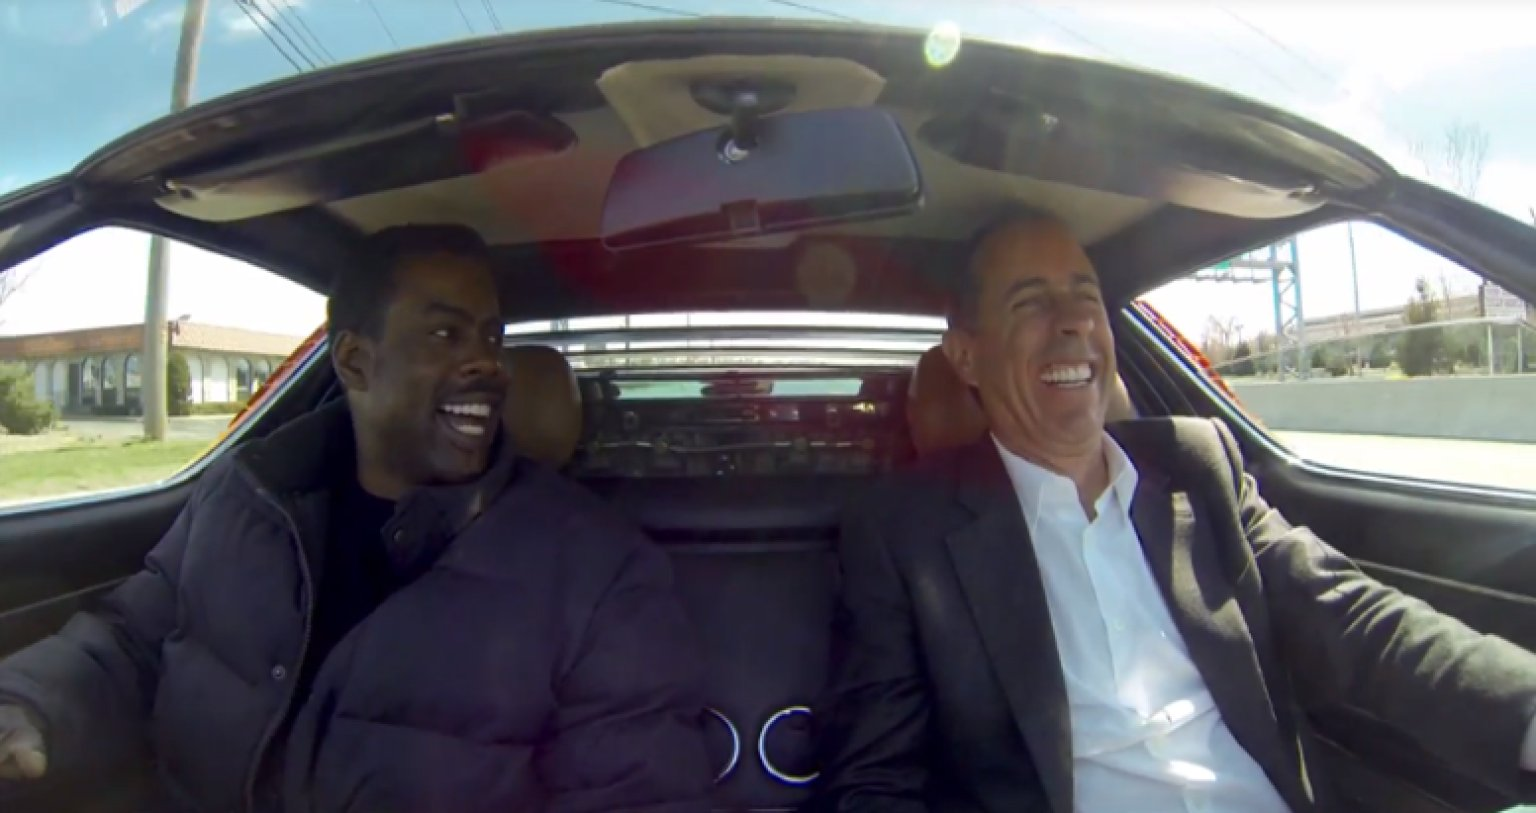 comedians cars Jerry Seinfeld, Comedy, and Punditry: What's the Deal?